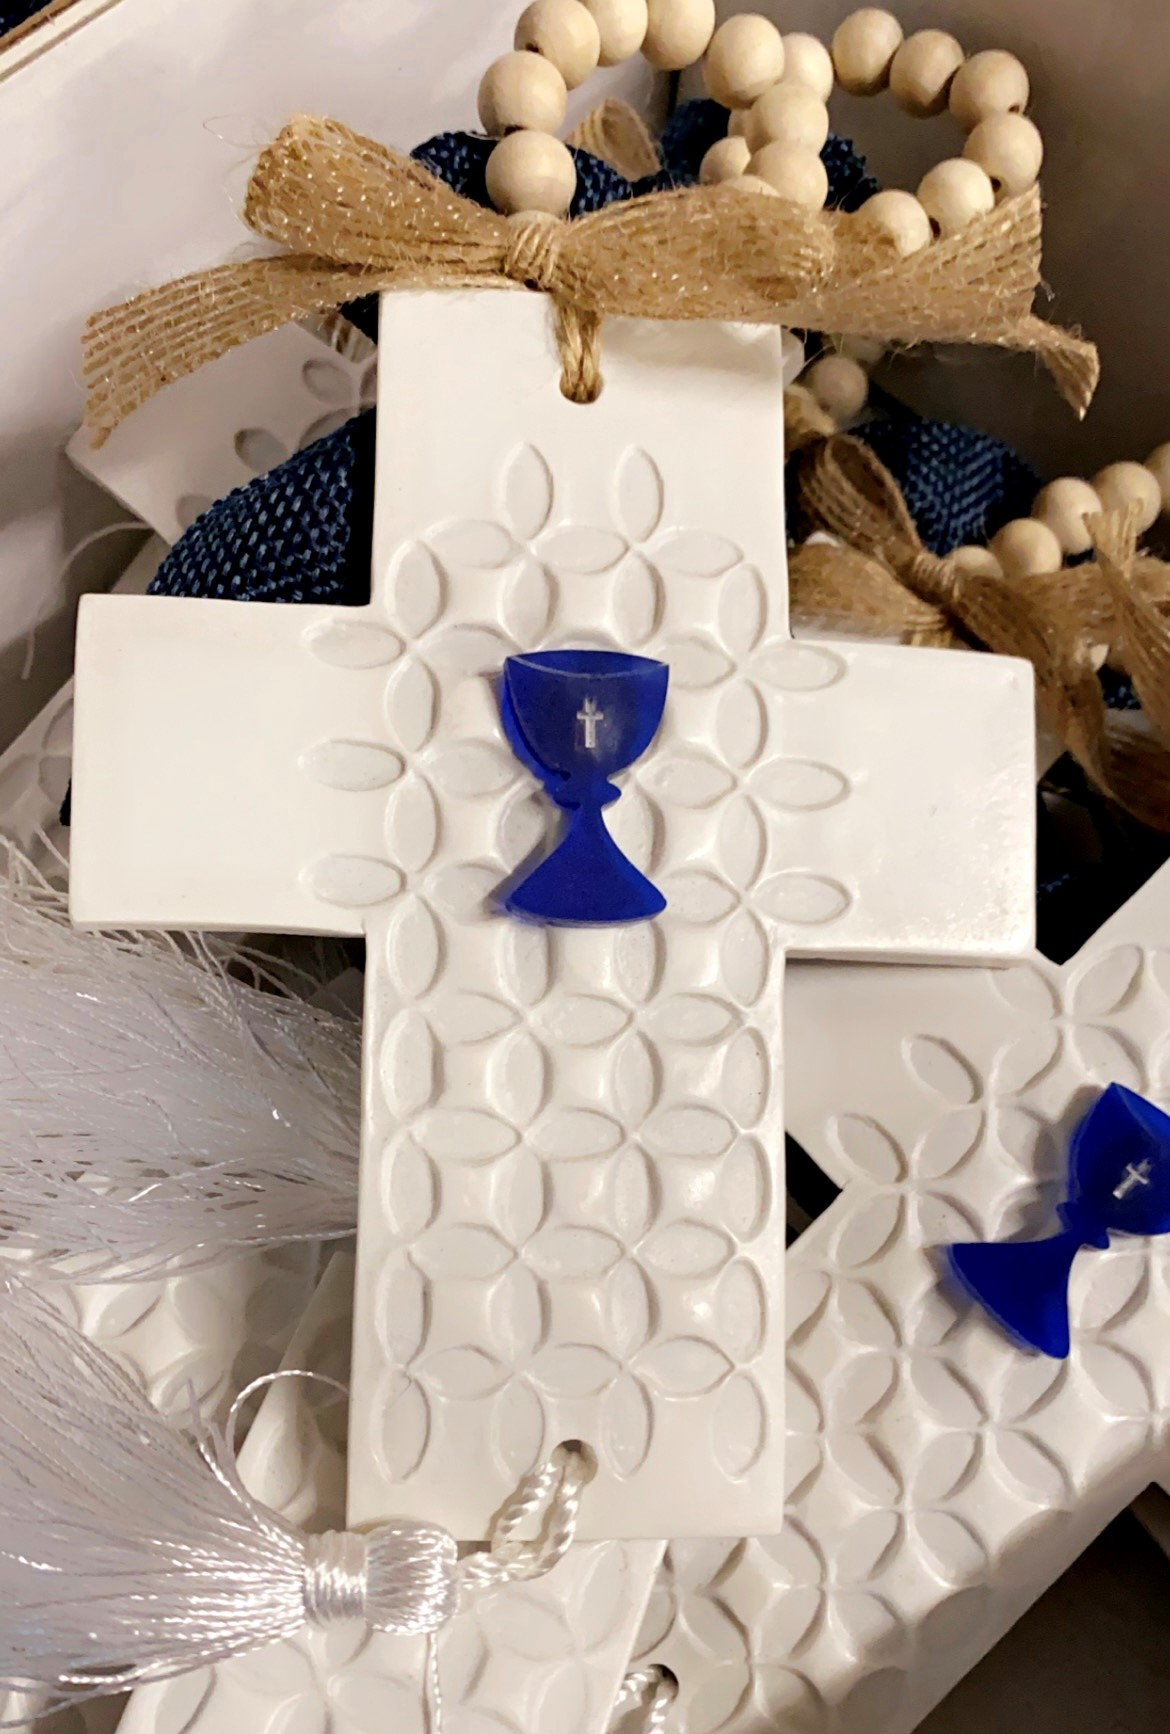 Large White Cross With Chalice